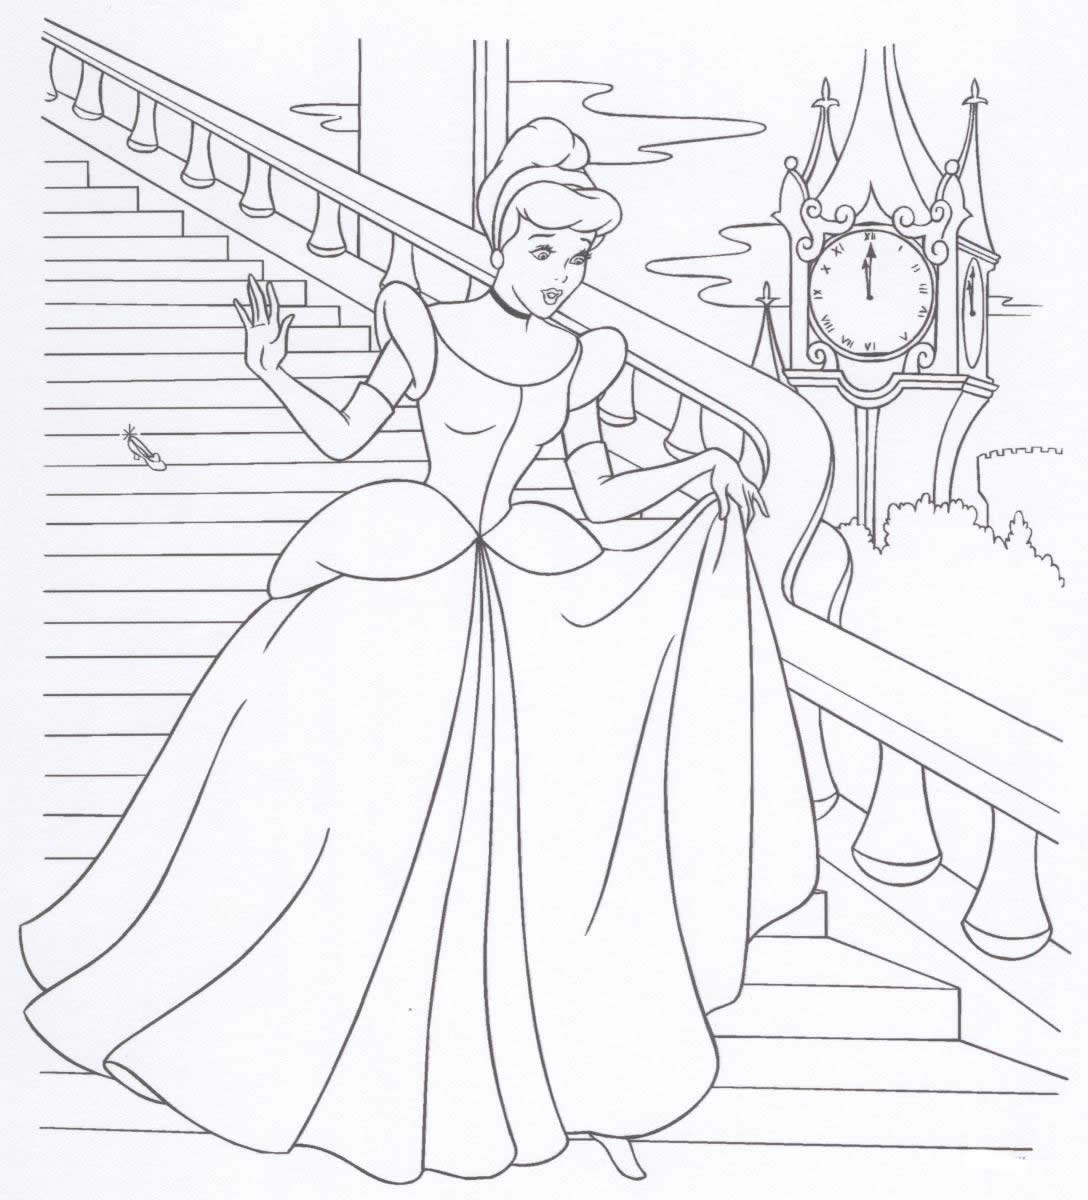 1088x1200 Free Printable Disney Princess Coloring Pages For Kids